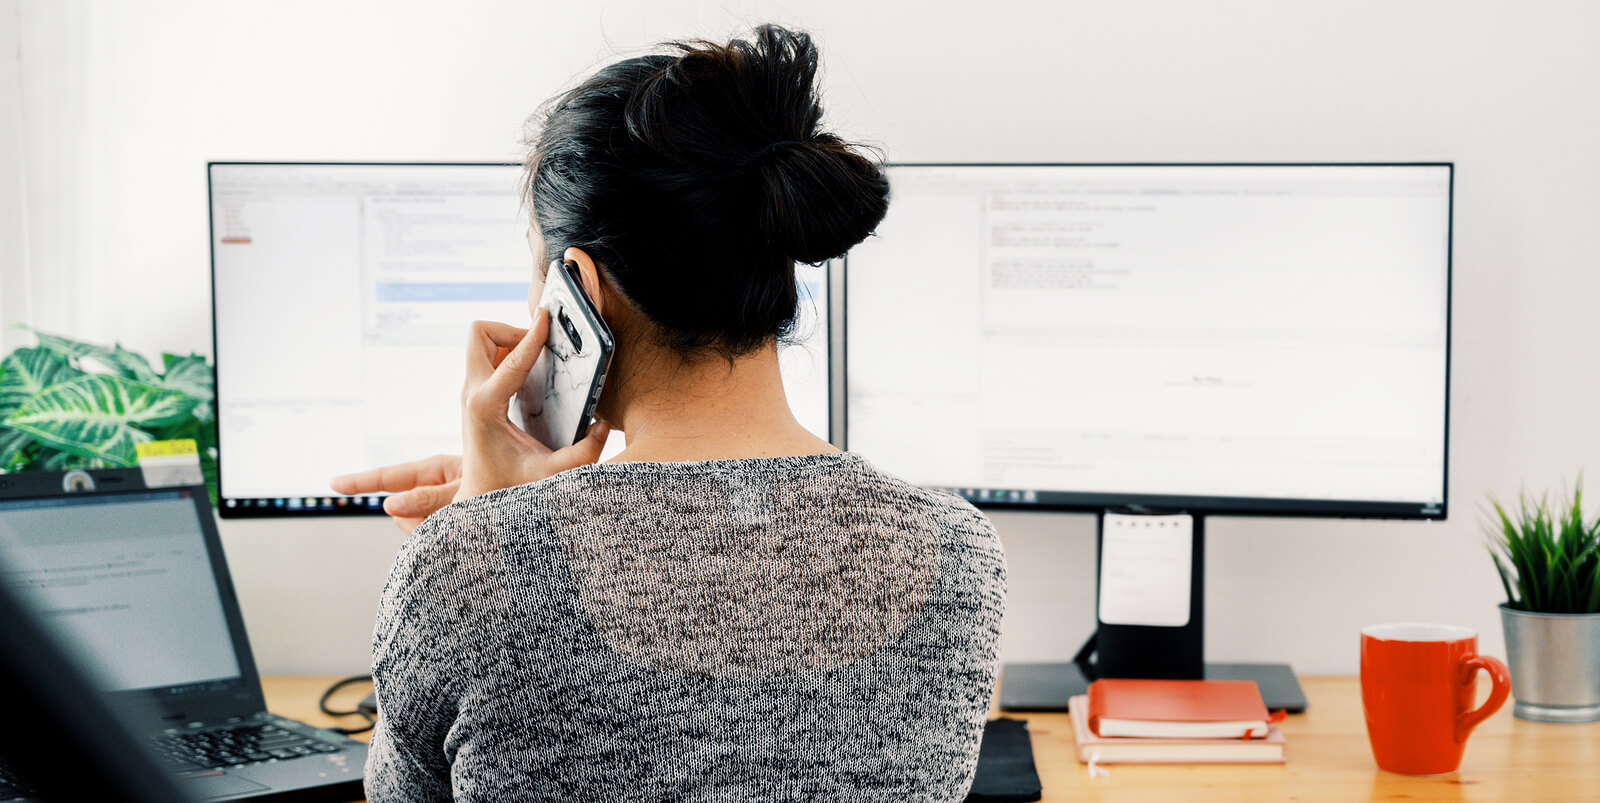 Remote Work Tips for Overcoming Common Productivity Barriers